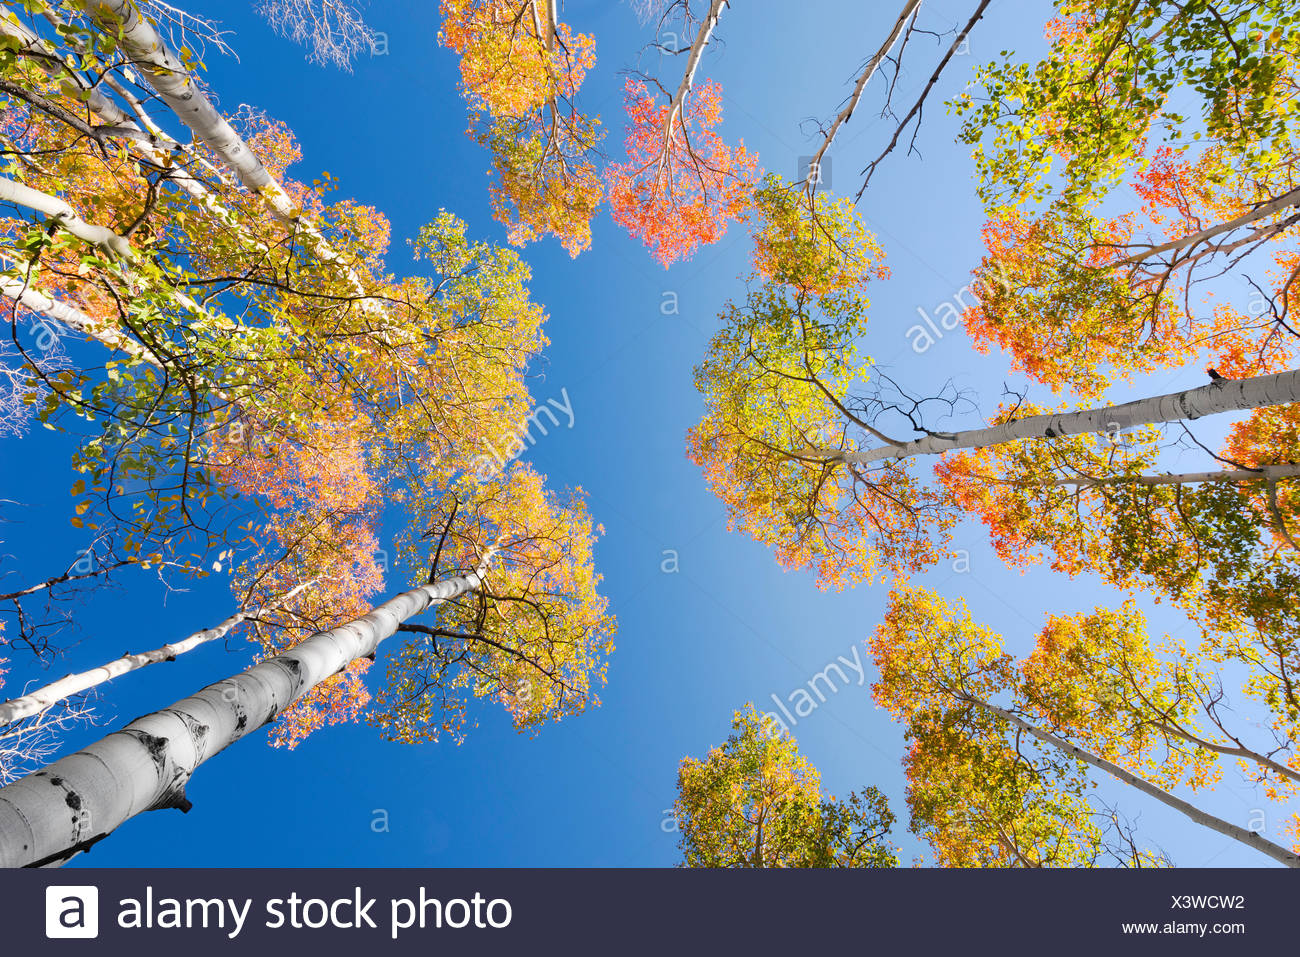 USA, America, birch, aspen, colour, autumn, red, yellow, green, forest, sky, blue, trunk, Utah, landscape, - Stock Image